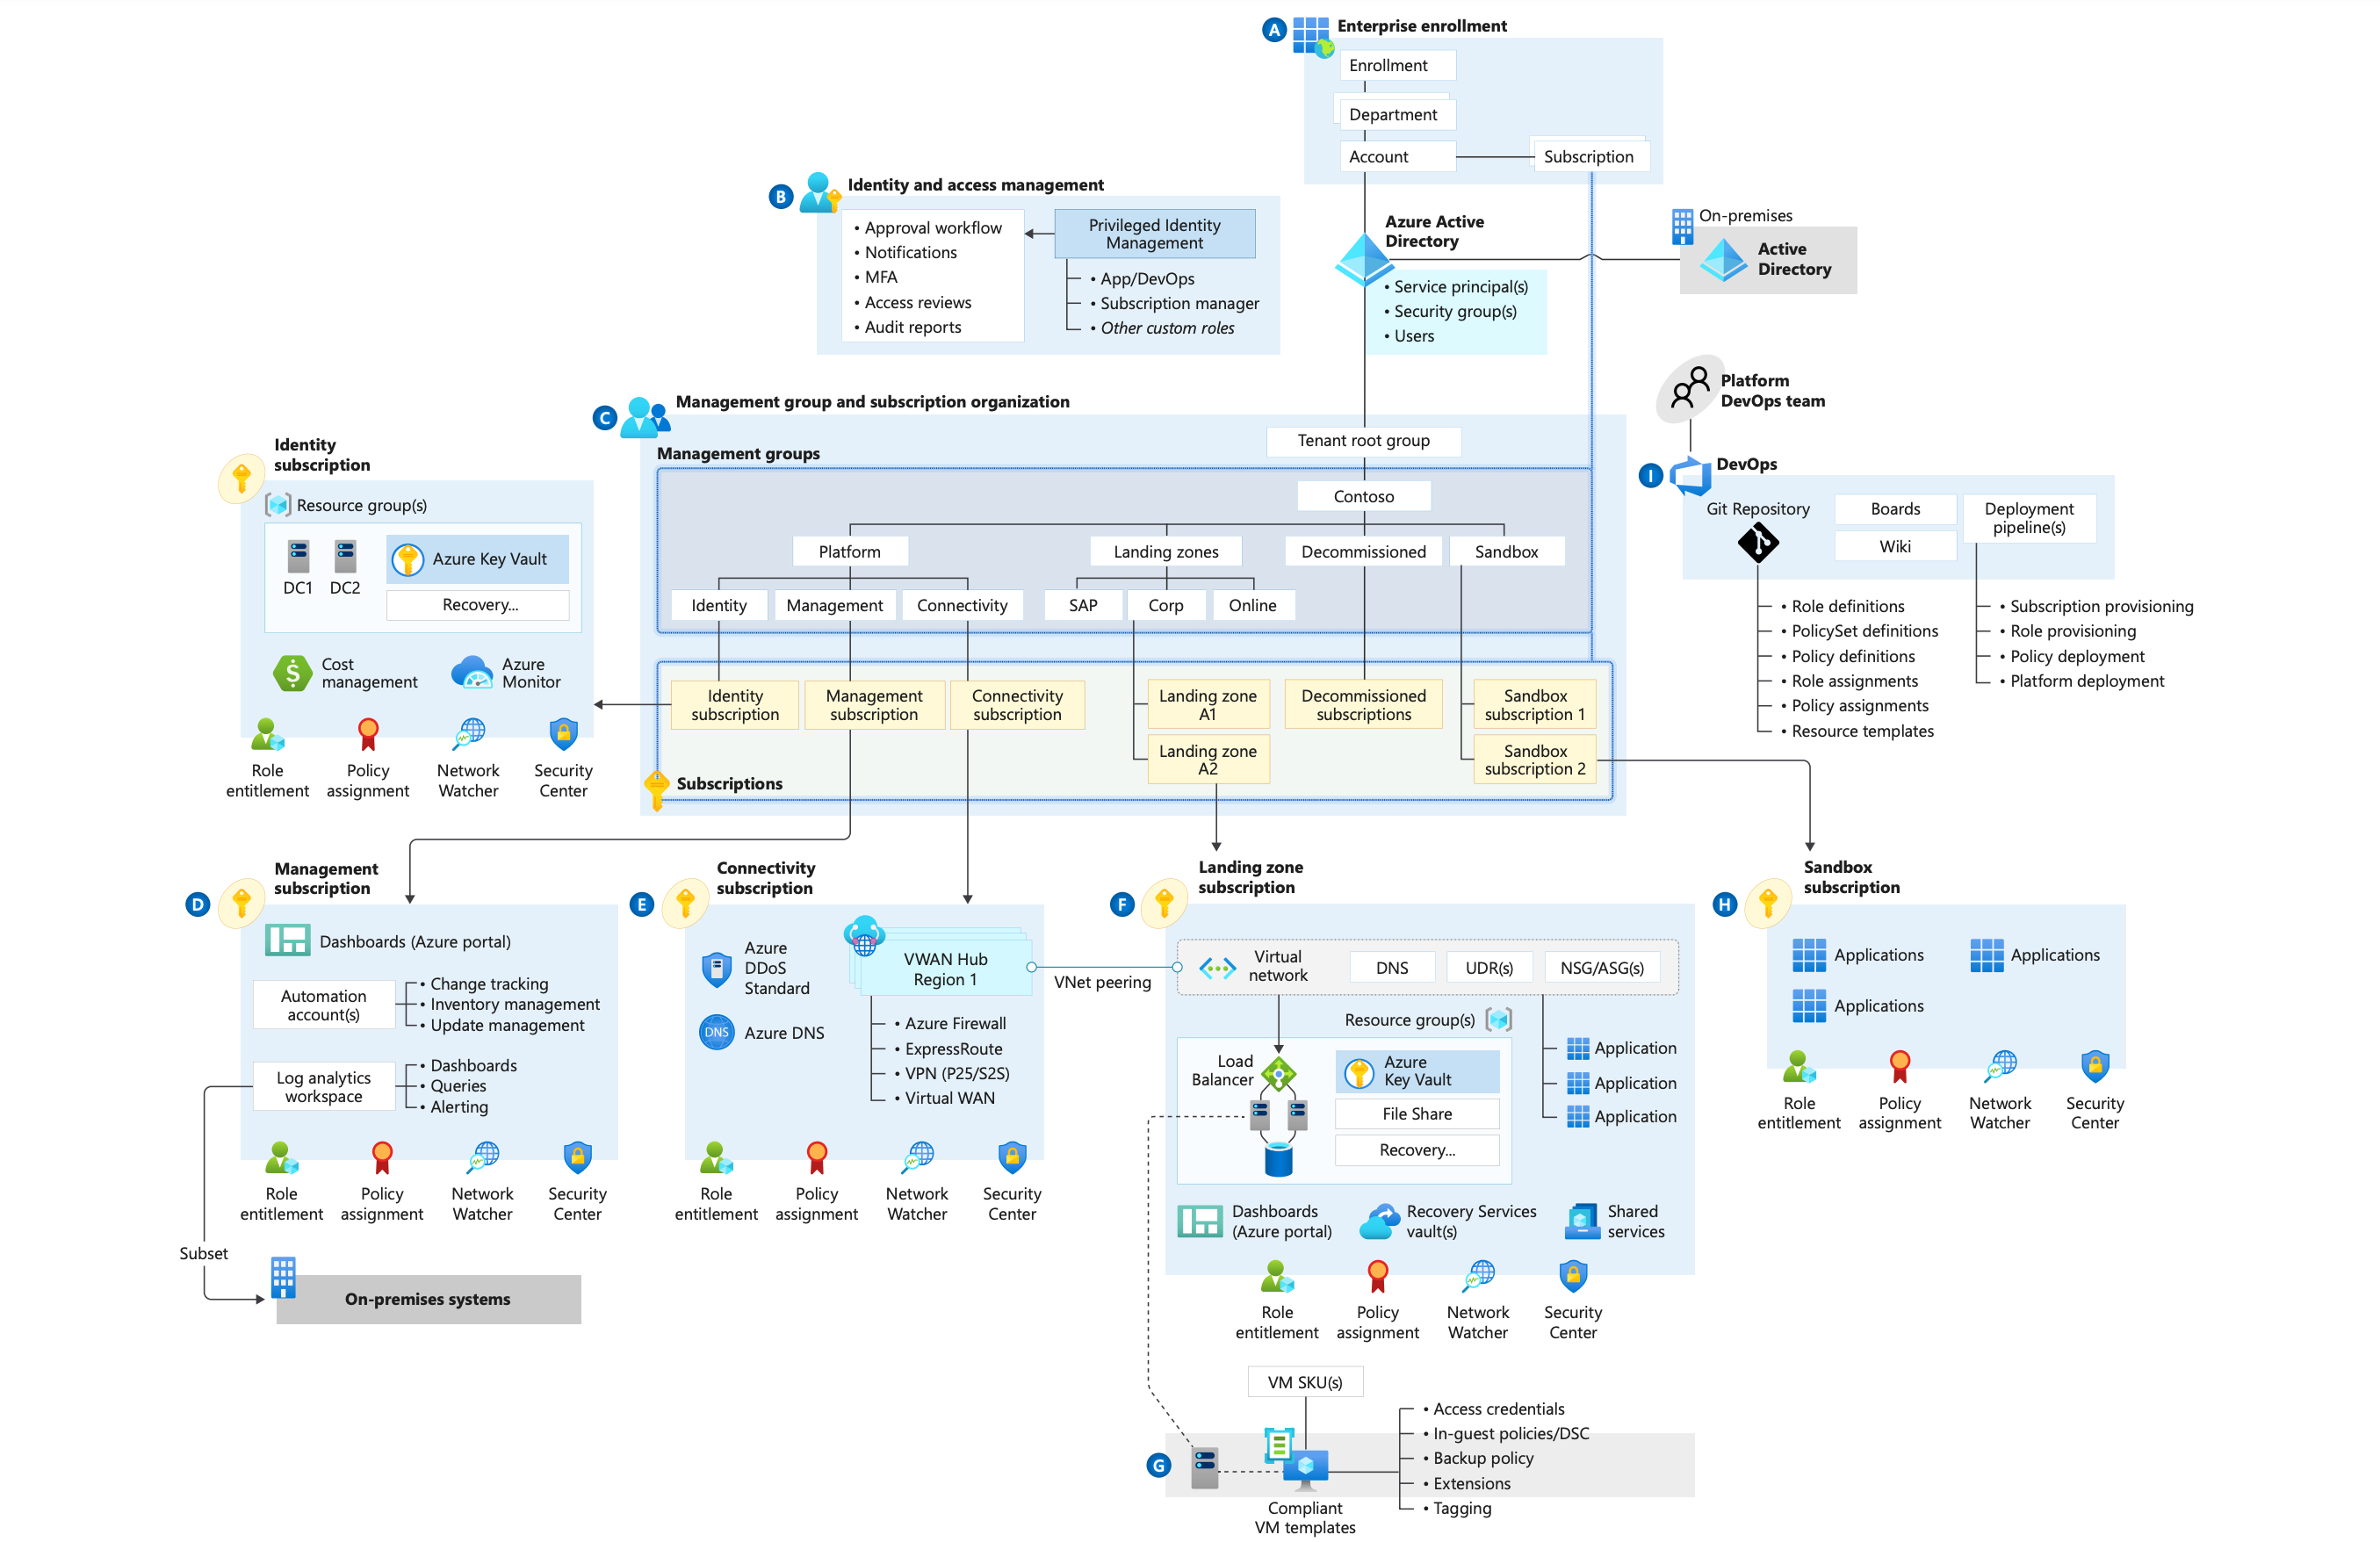 Cloud Adoption Framework enterprise-scale landing zone architecture based on an Azure Virtual WAN network topology. The connectivity subscription uses a Virtual WAN hub.